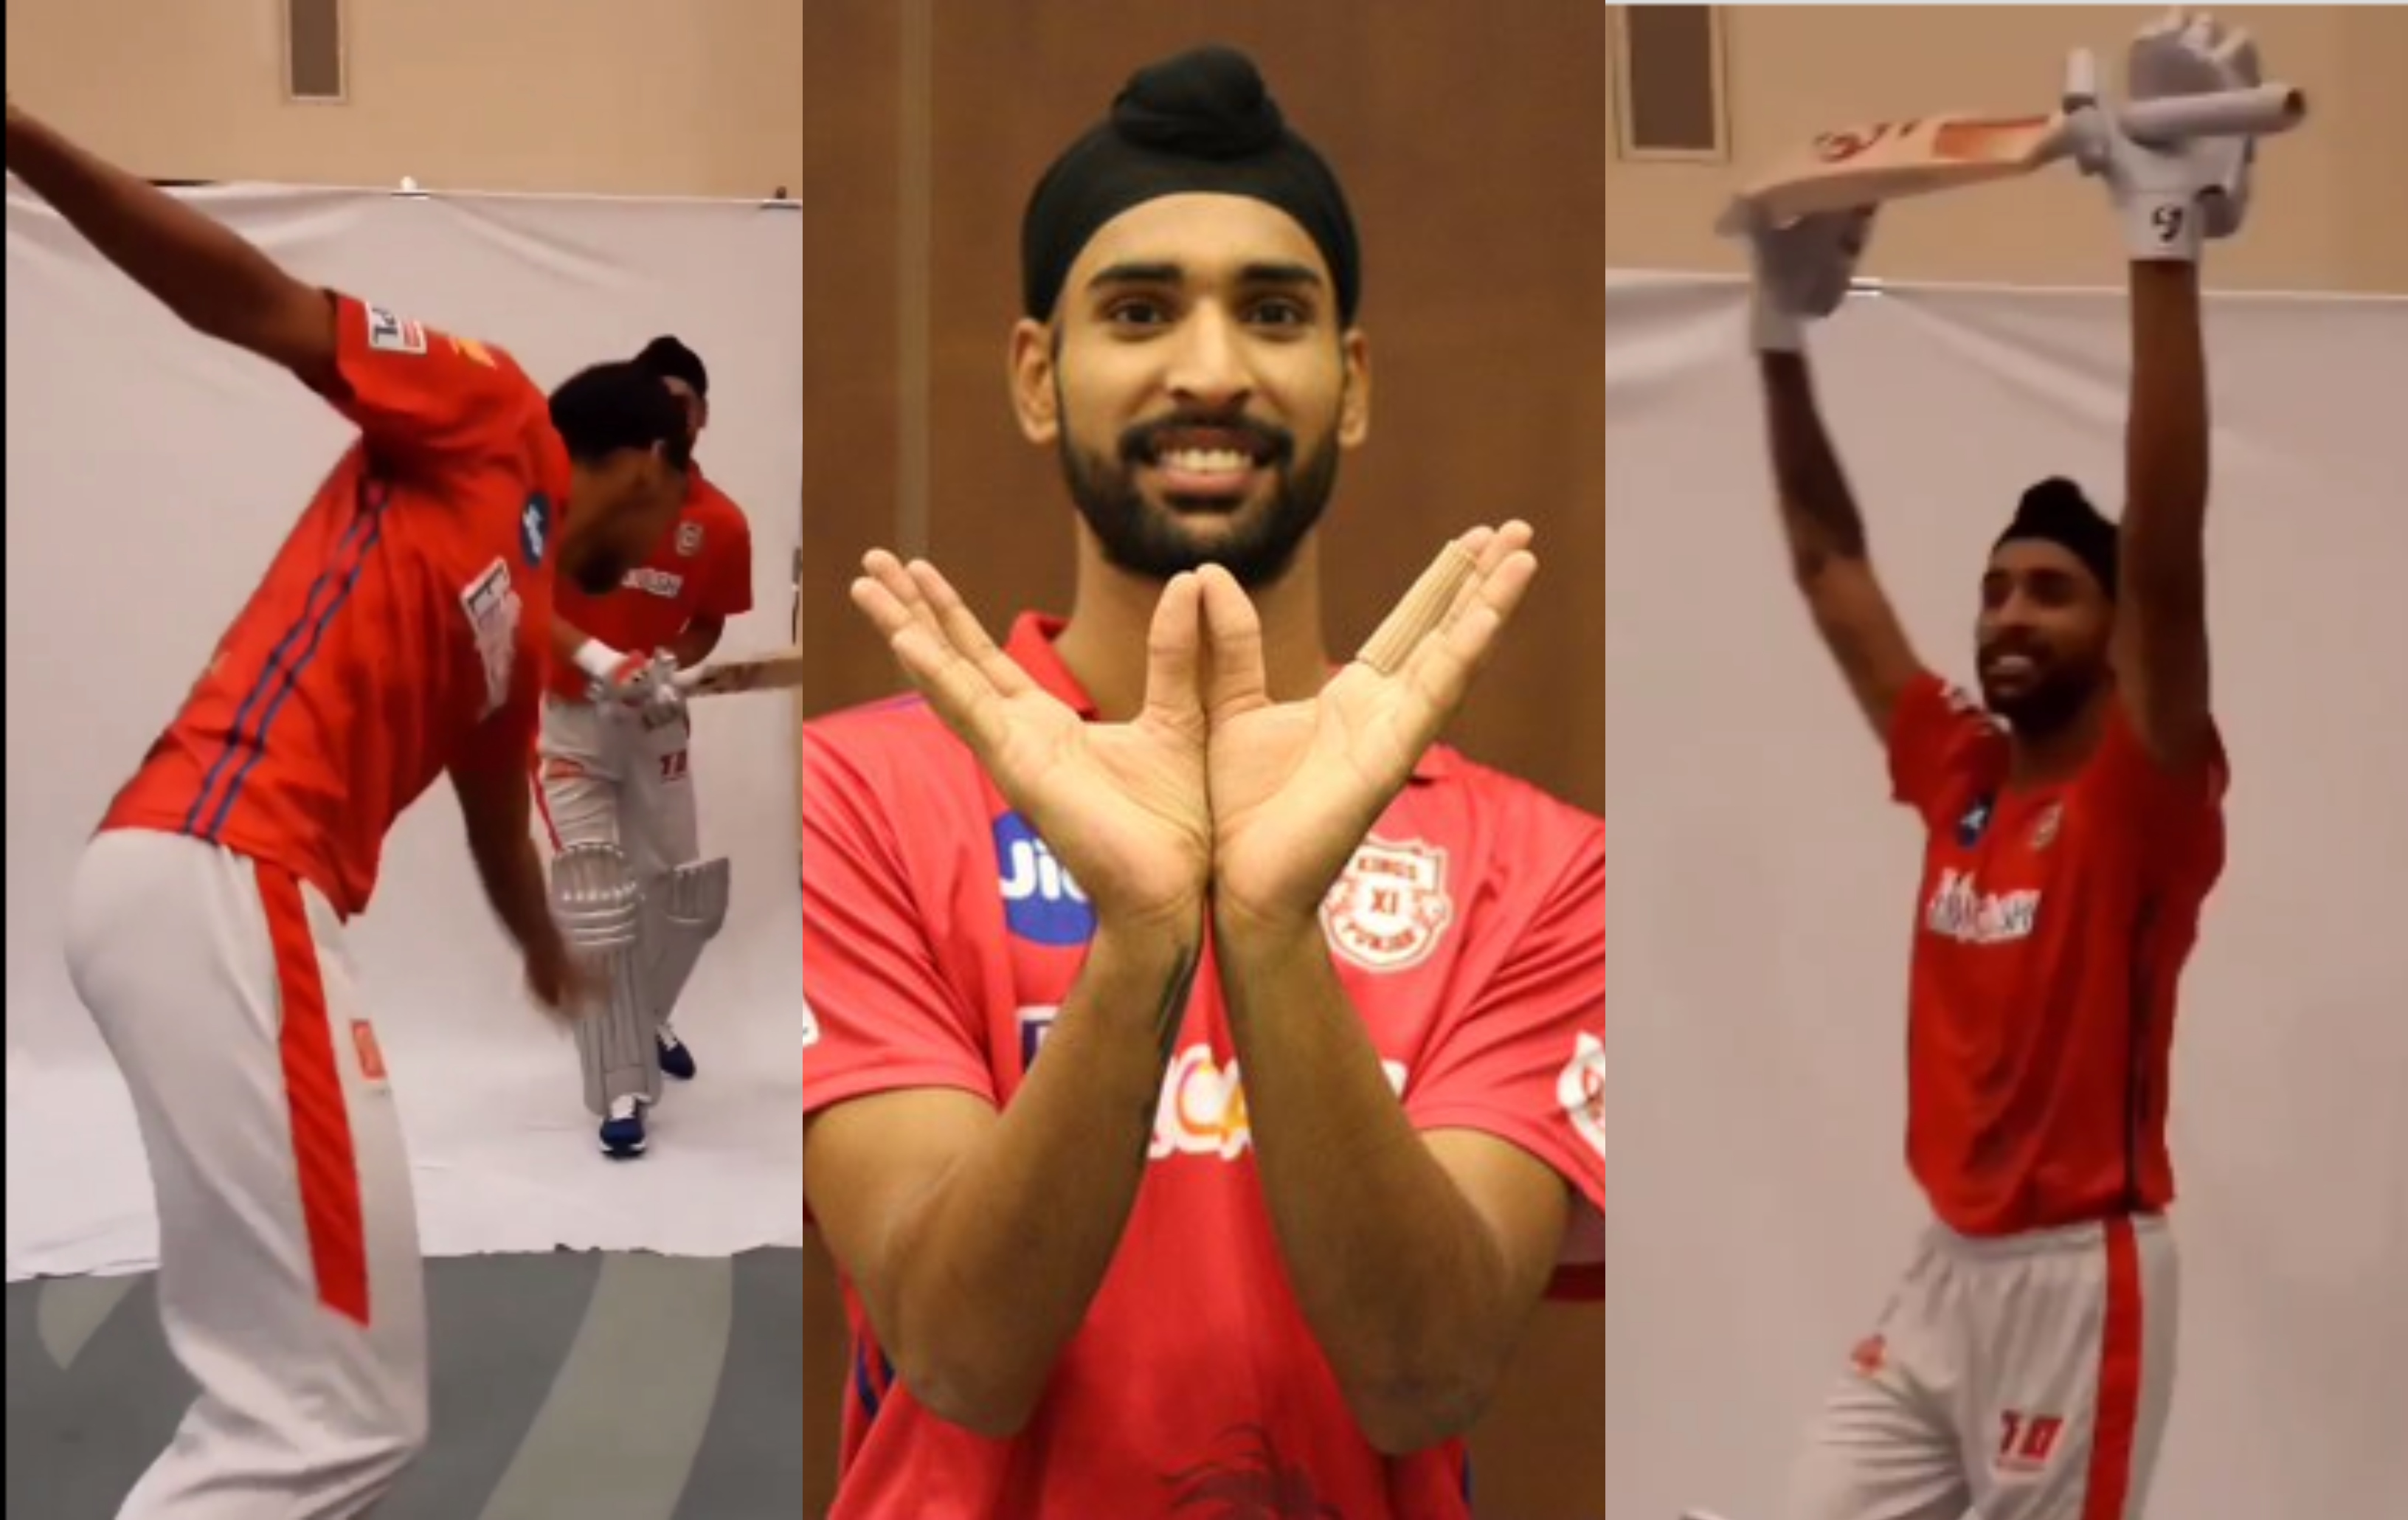 KXIP shared a fund video of Arshdeep Singh and Harpreet Singh | KXIP Instagram/Twitter